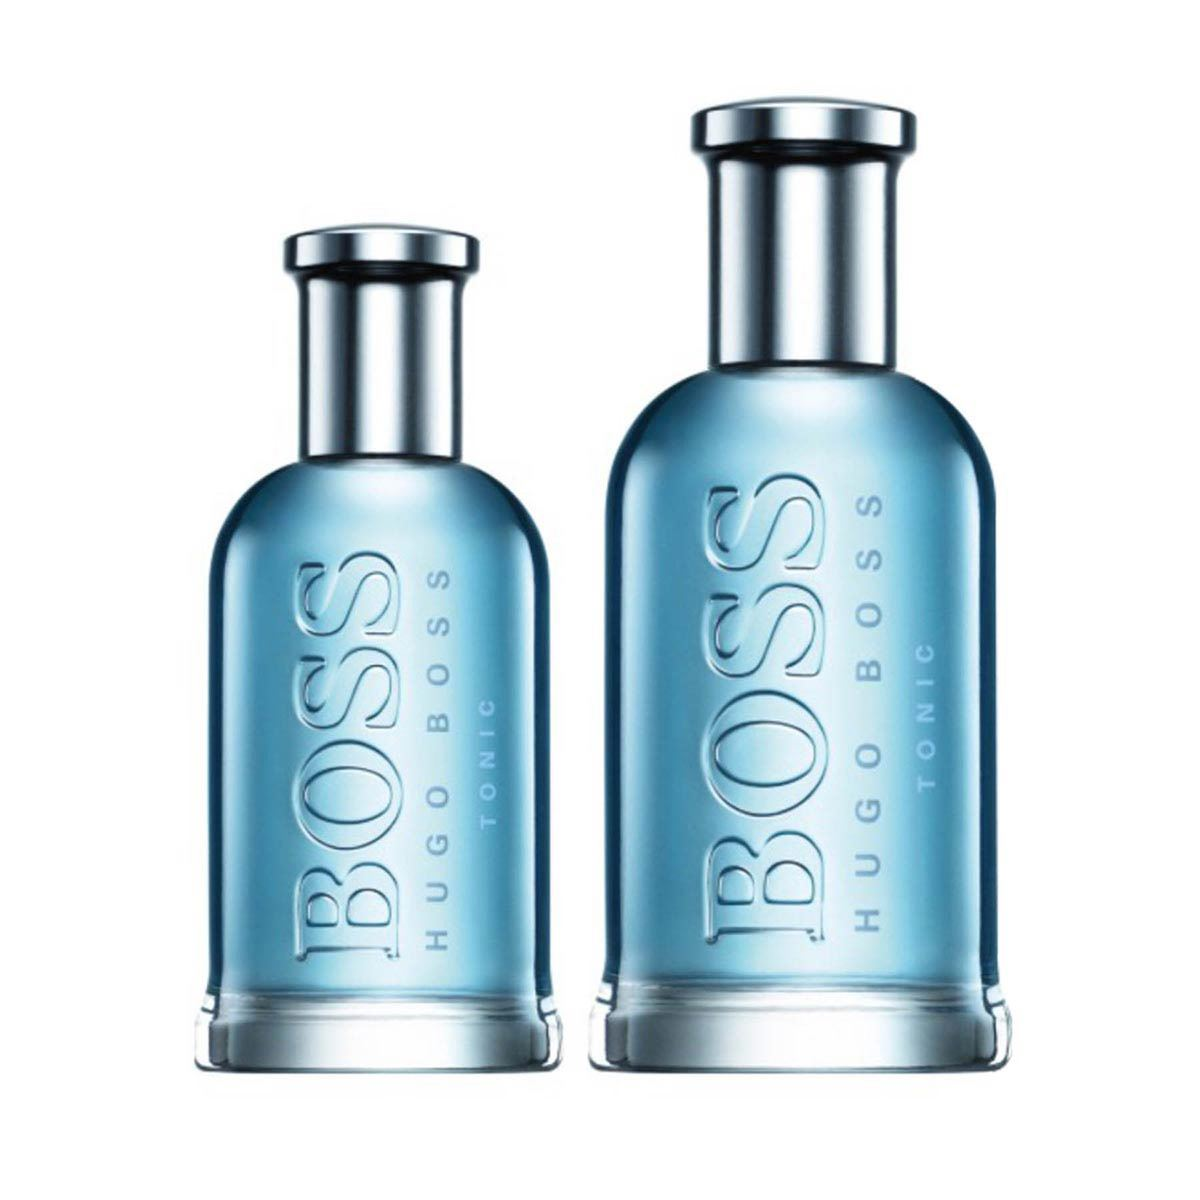 Estuche Caballero Boss Bottled Tonic EDT 100ml